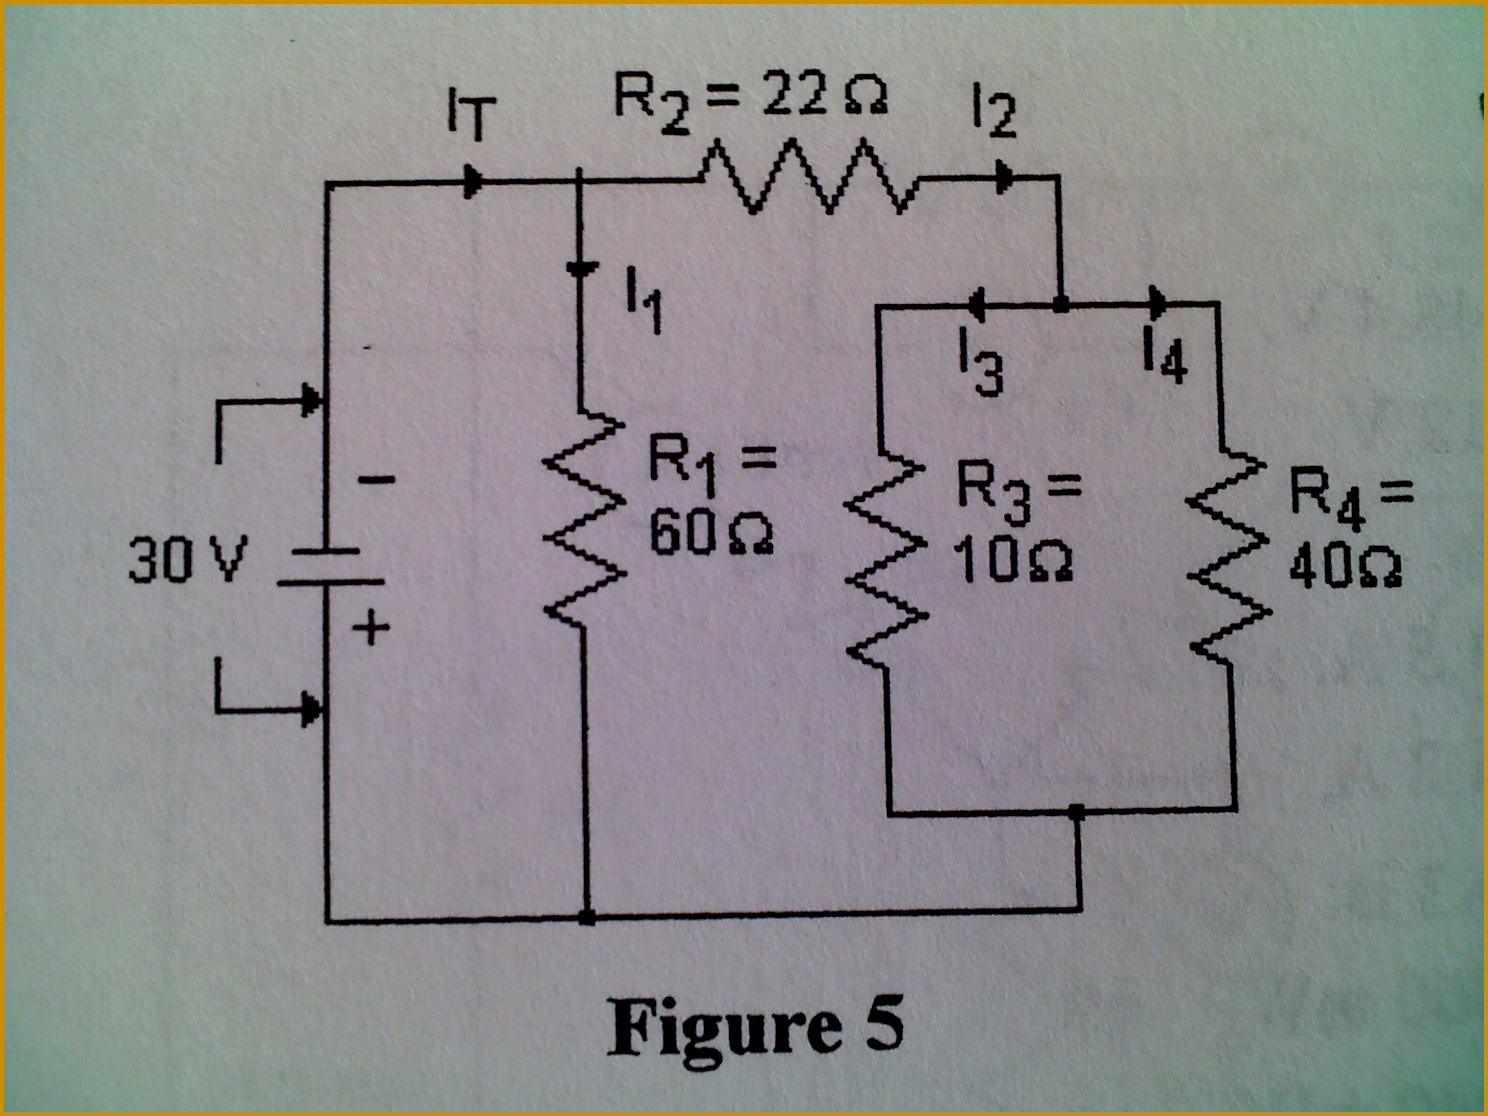 3 Series And Parallel Circuits Worksheet With Answers